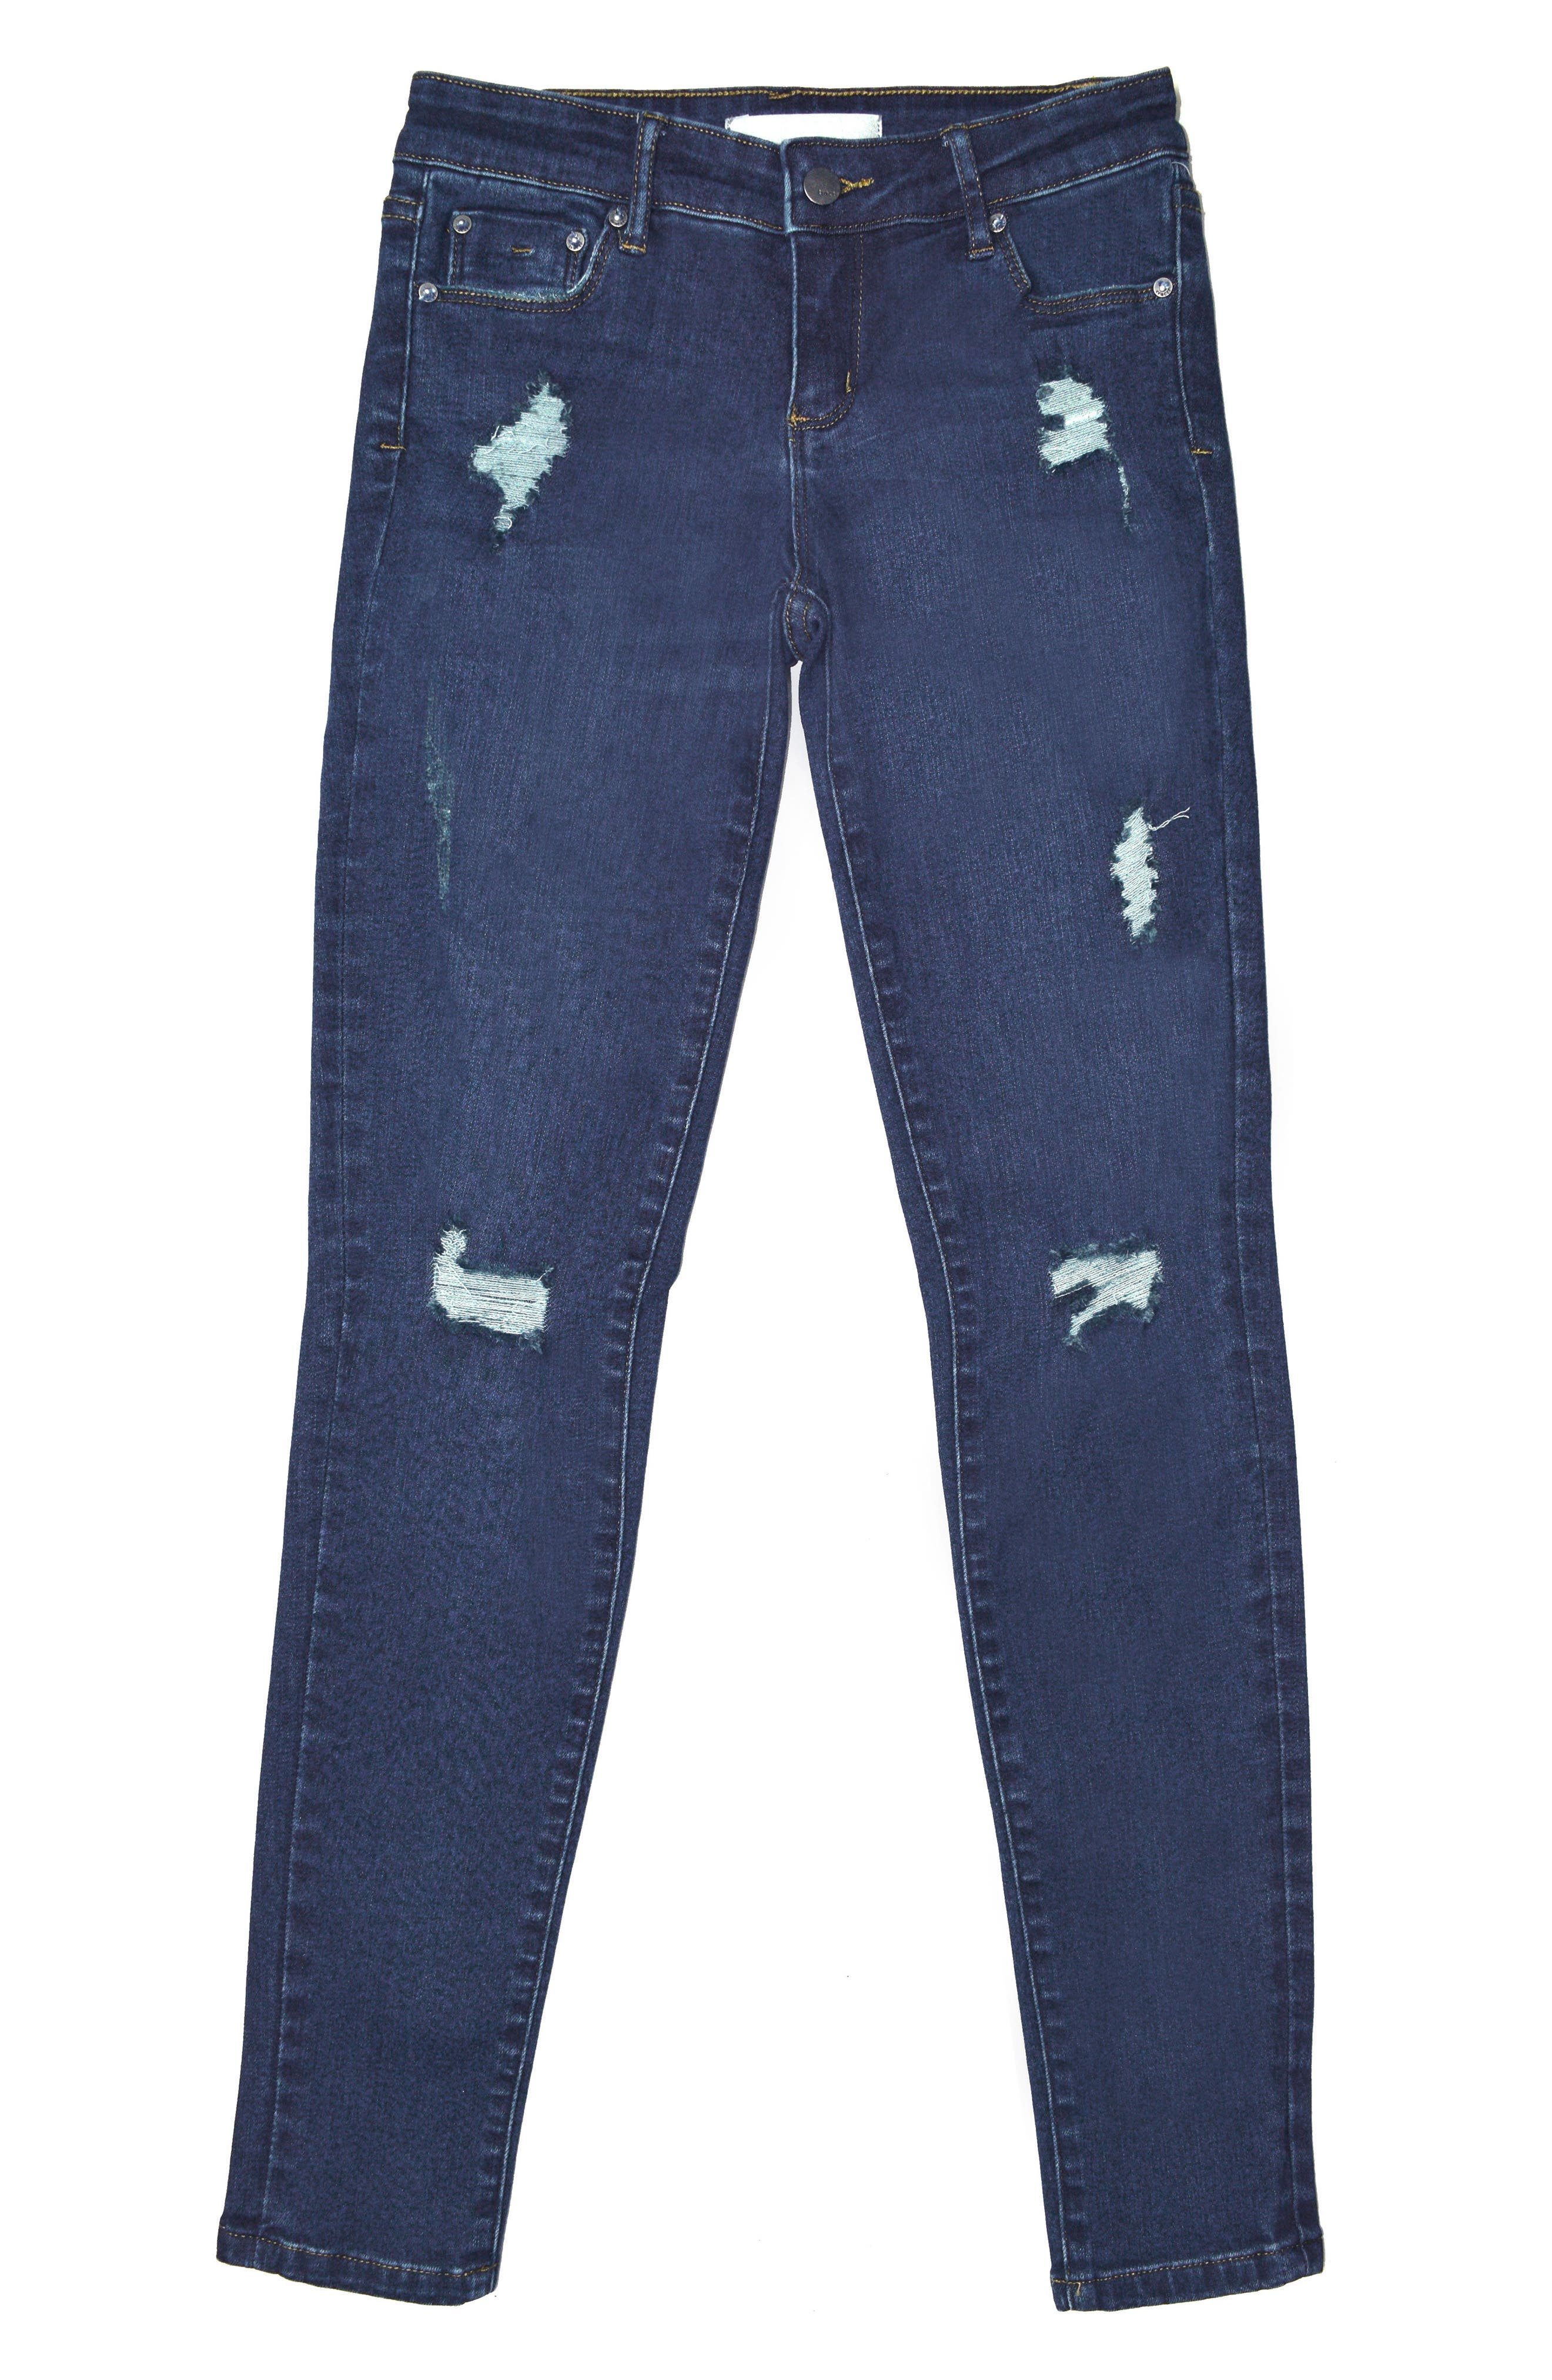 Main Image - Tractr Distressed Skinny Jeans (Big Girls)